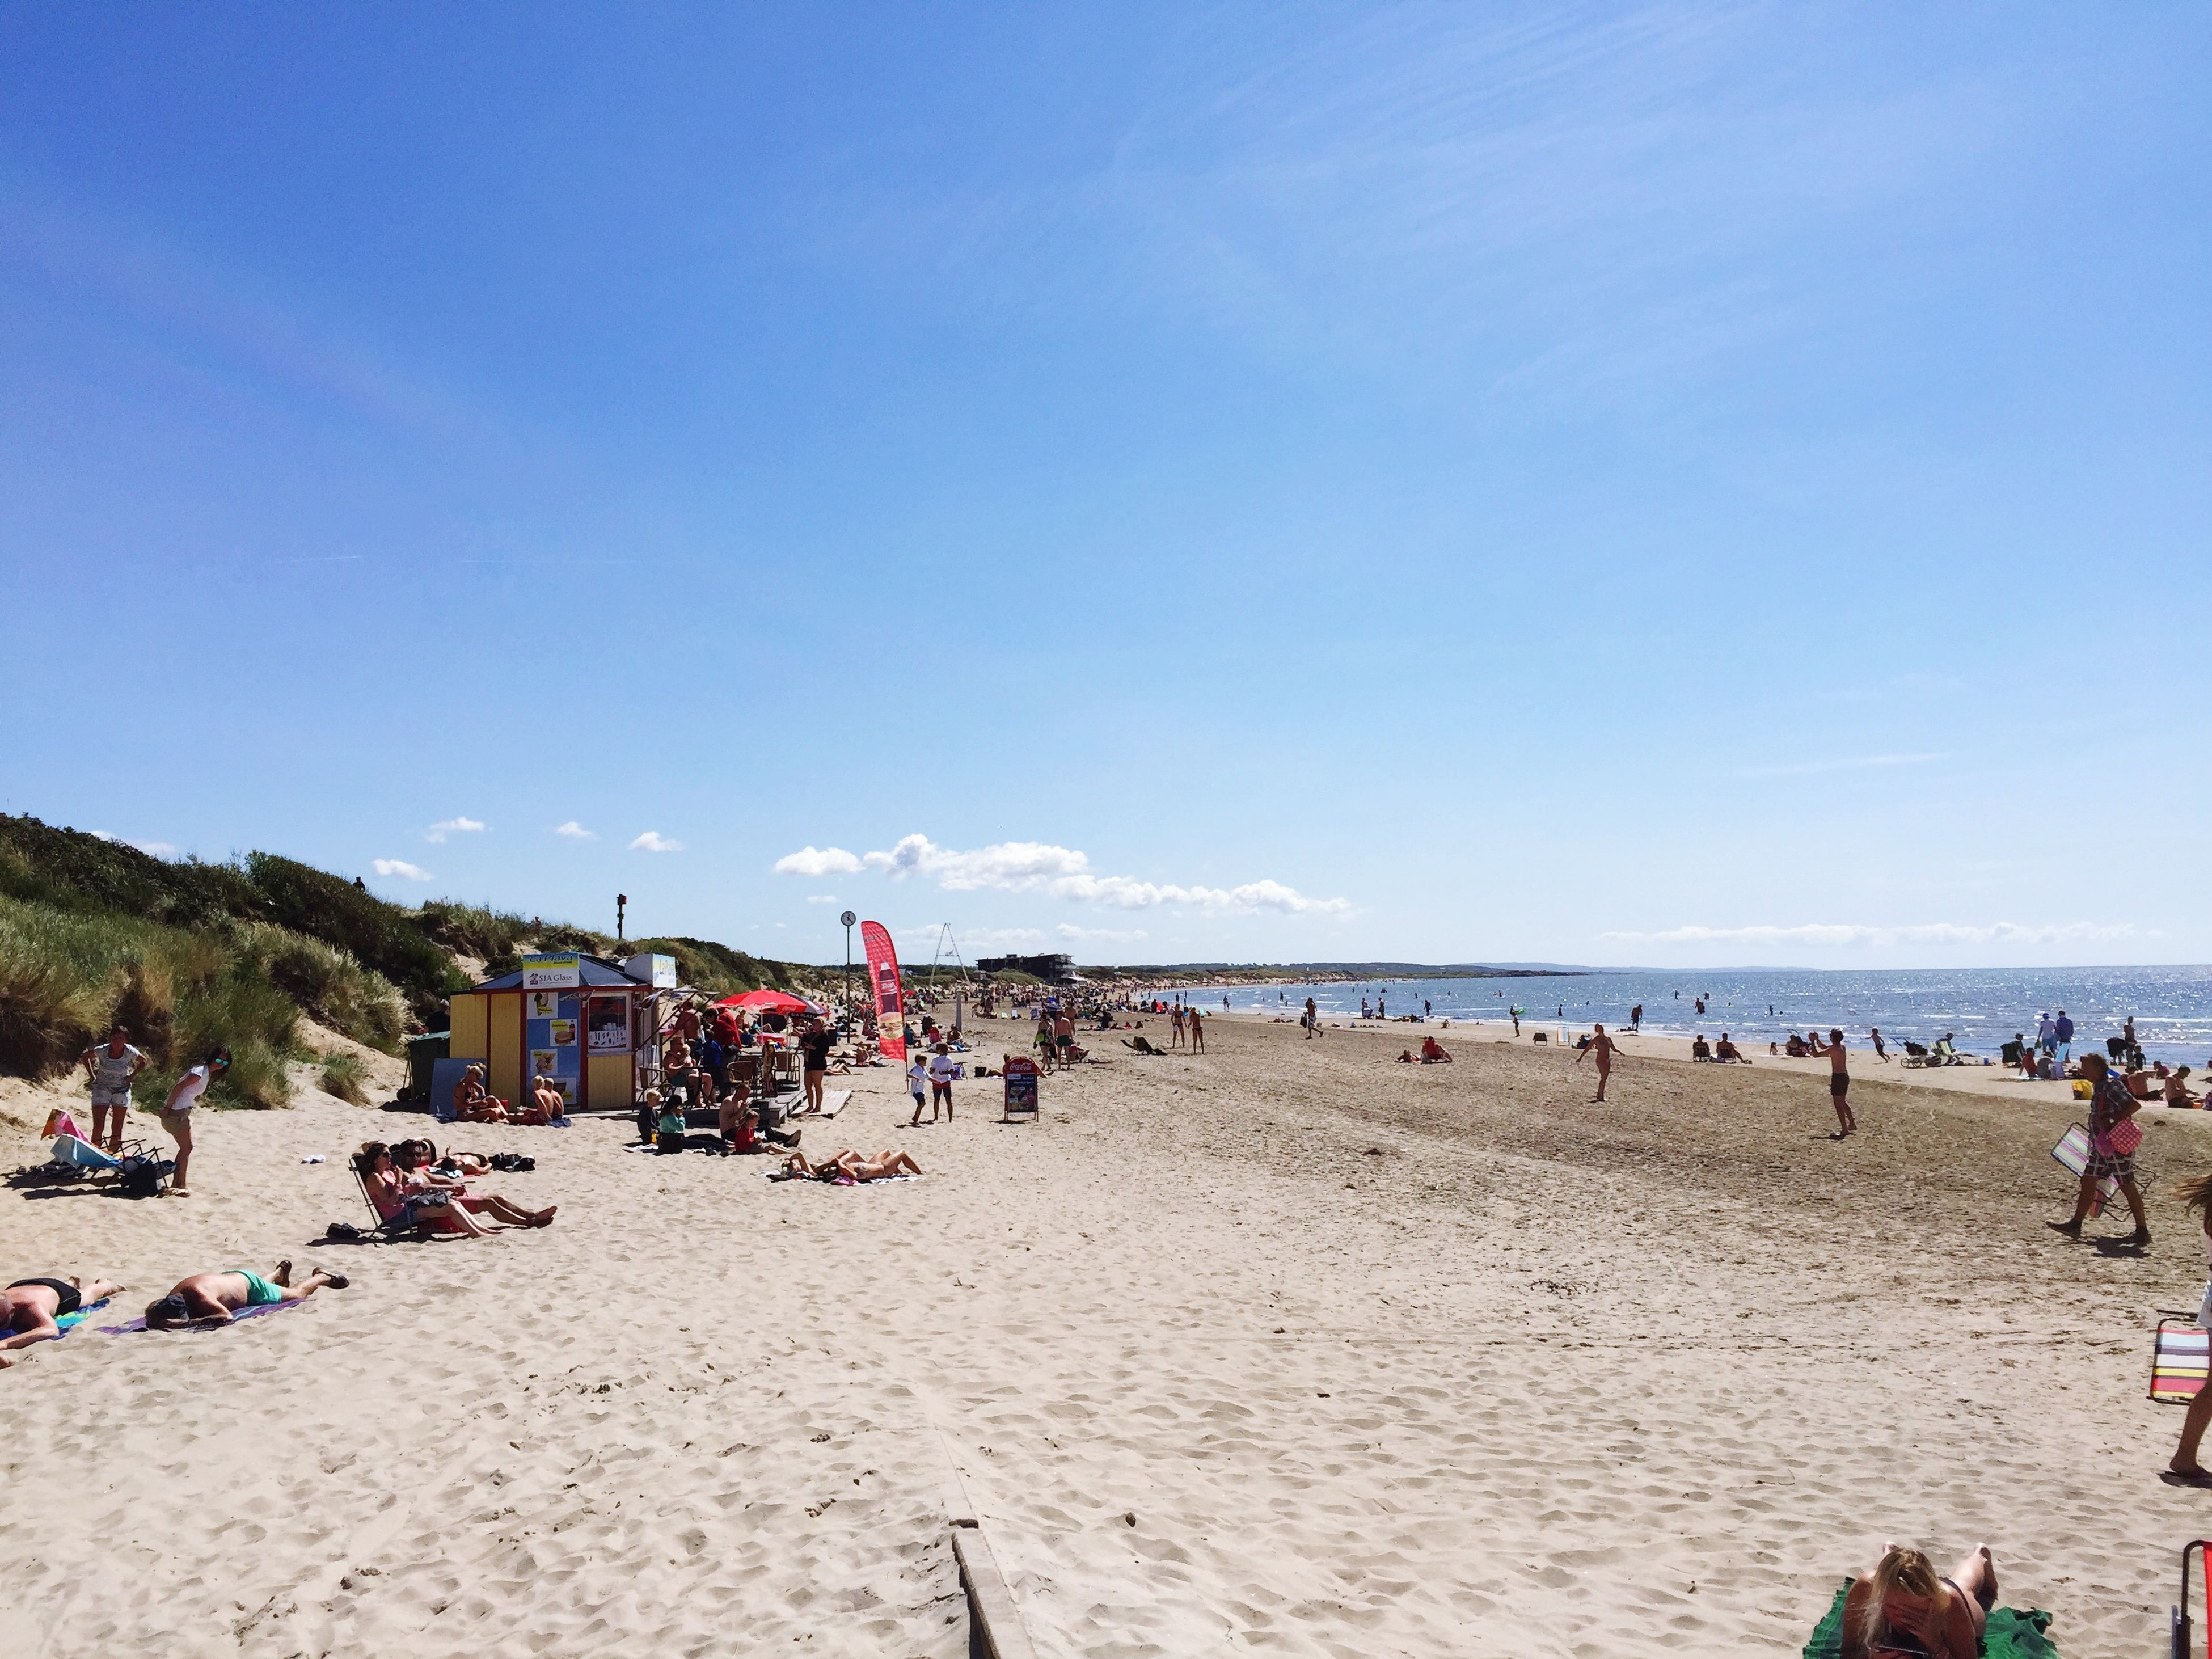 beach, sea, large group of people, water, sand, shore, vacations, leisure activity, horizon over water, lifestyles, person, mixed age range, sky, men, blue, tourist, relaxation, scenics, beach umbrella